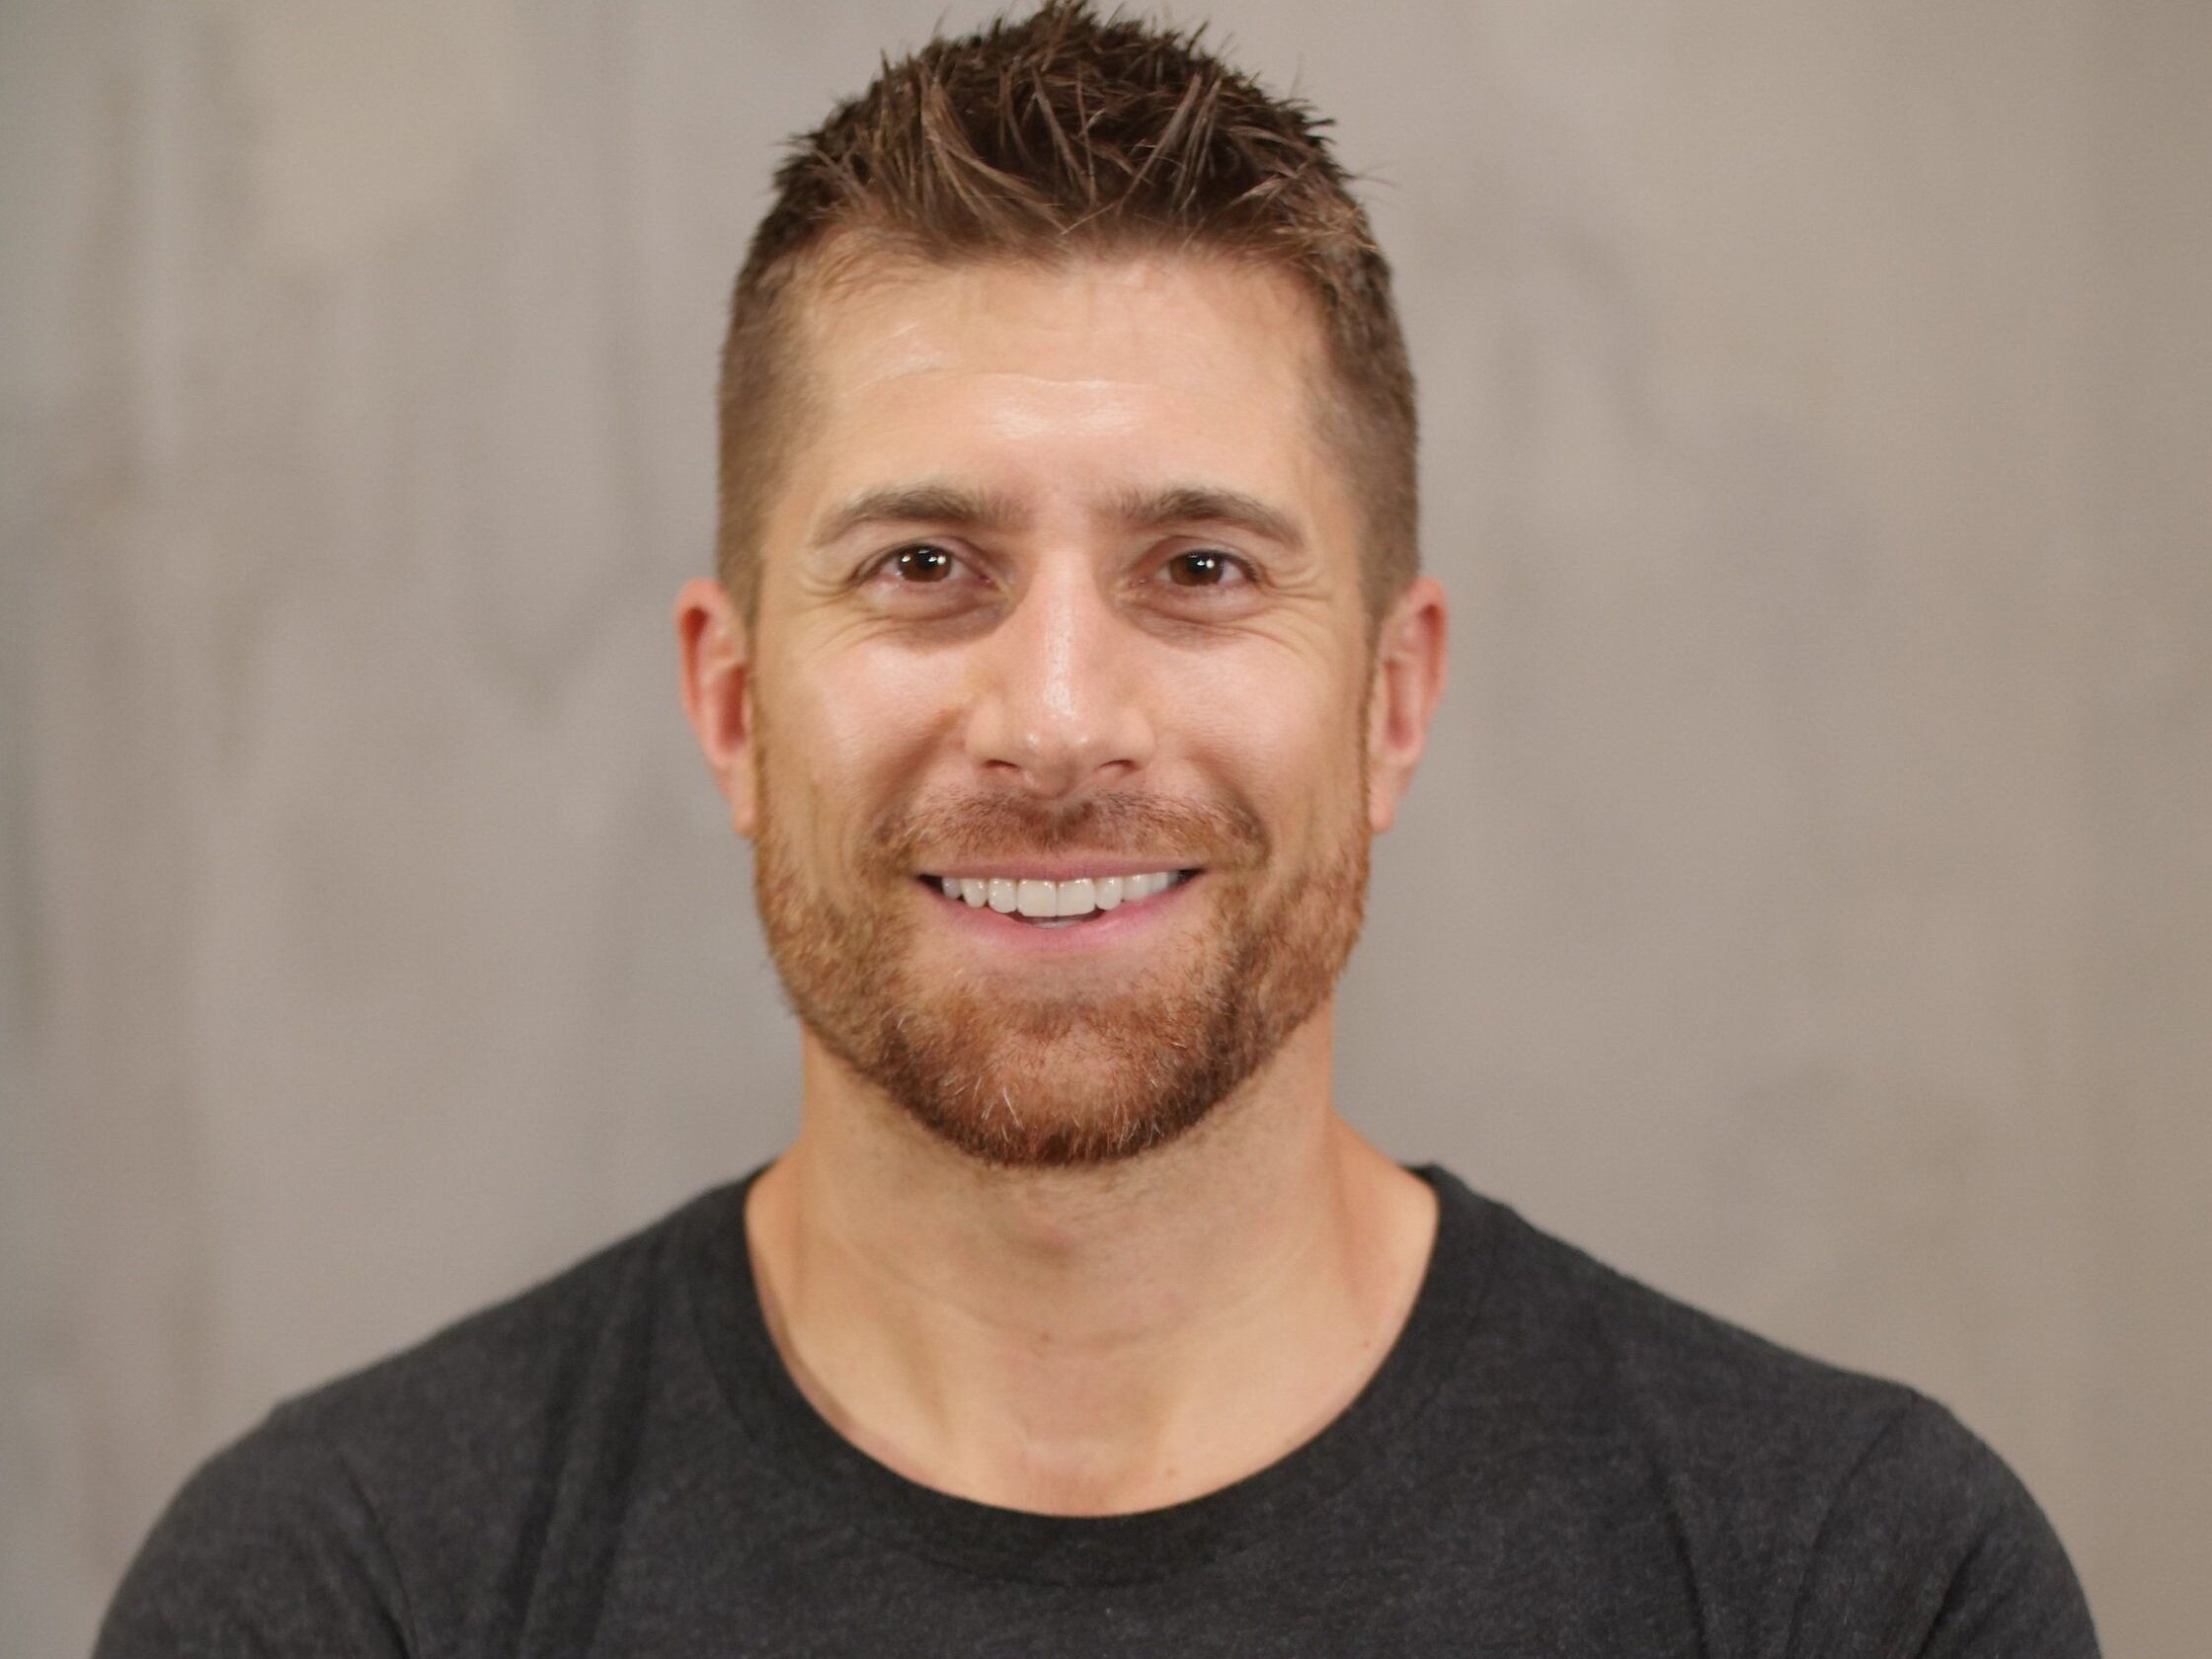 Adam Shuty, Founder - Engineer, Martial Artist, Weightlifter and Certified Strength and Conditioning Specialist, Adam's diverse background forms the backbone of the culture, attitude and training at ATOMIC.